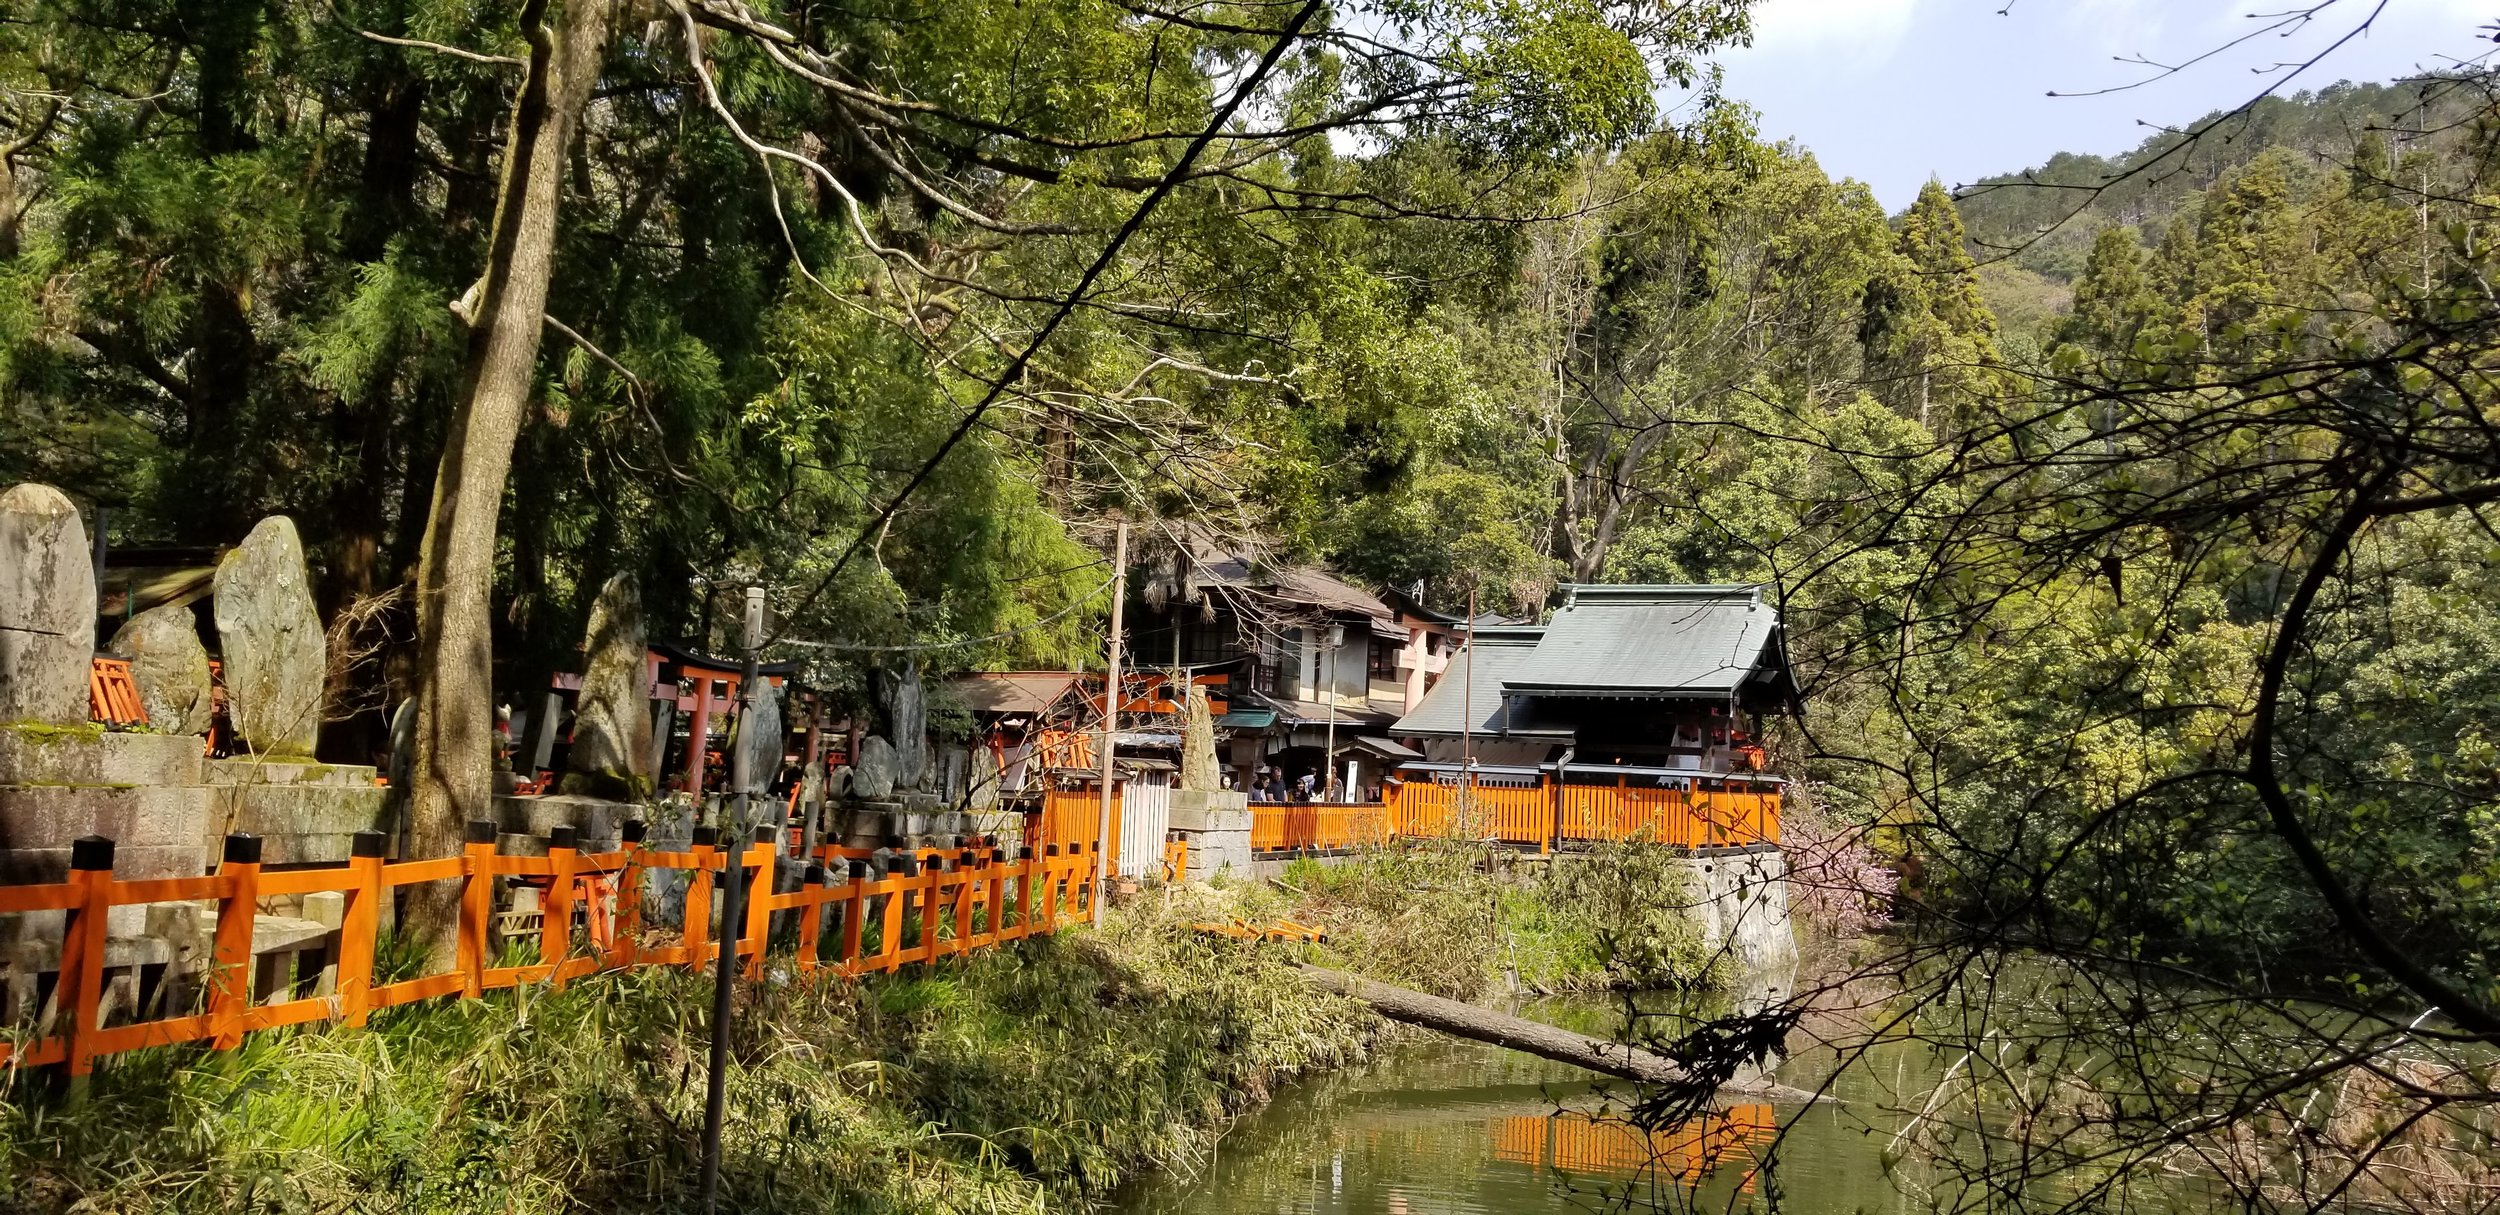 Next post: Fushima Inari Shrine in Kyoto!